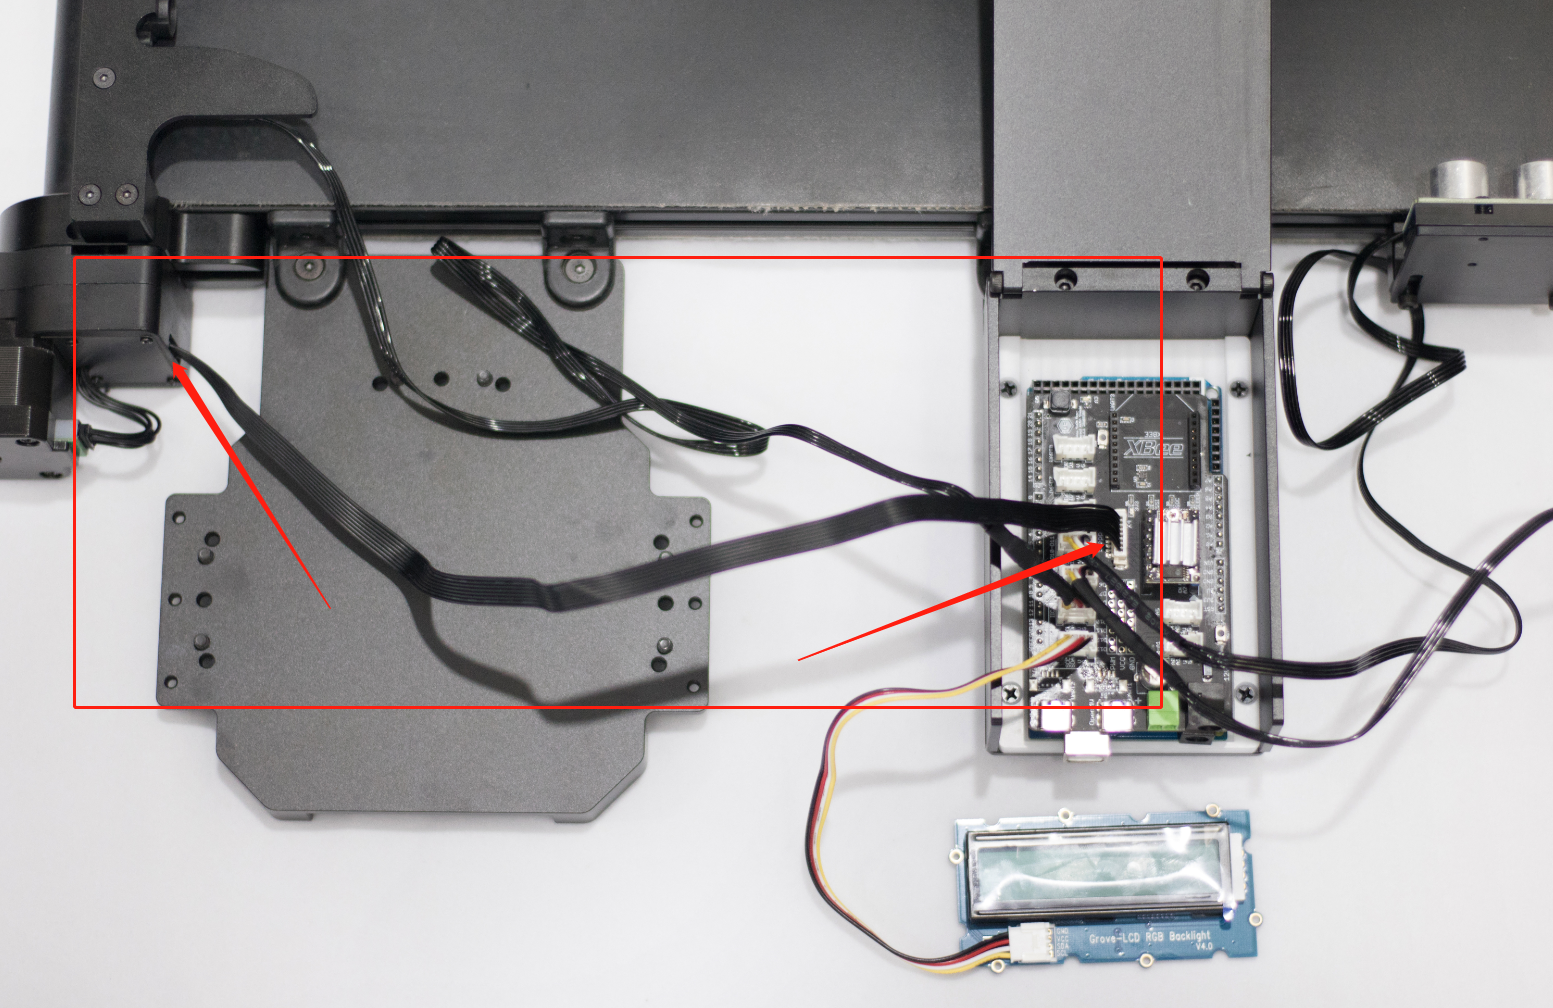 Picture of Connect Conveyor Belt: Insert the Conveyor Belt Cord Into the Motor Drive of the Main Control Board